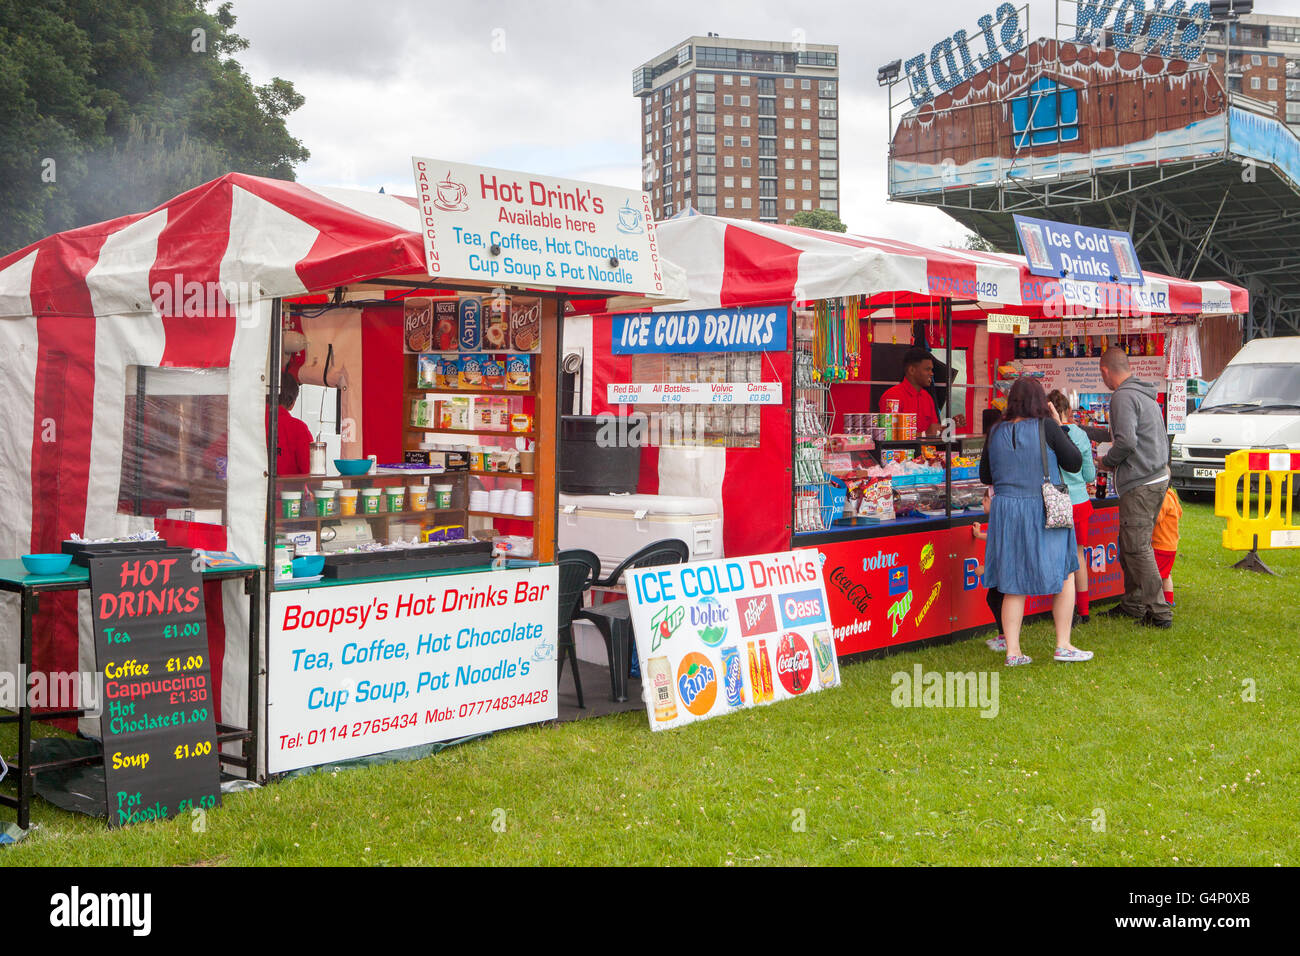 Food stall vans, Ice cold & Hot drinks at the Africa Oye festival in Sefton Park, Liverpool, Merseyside, UK - Stock Image